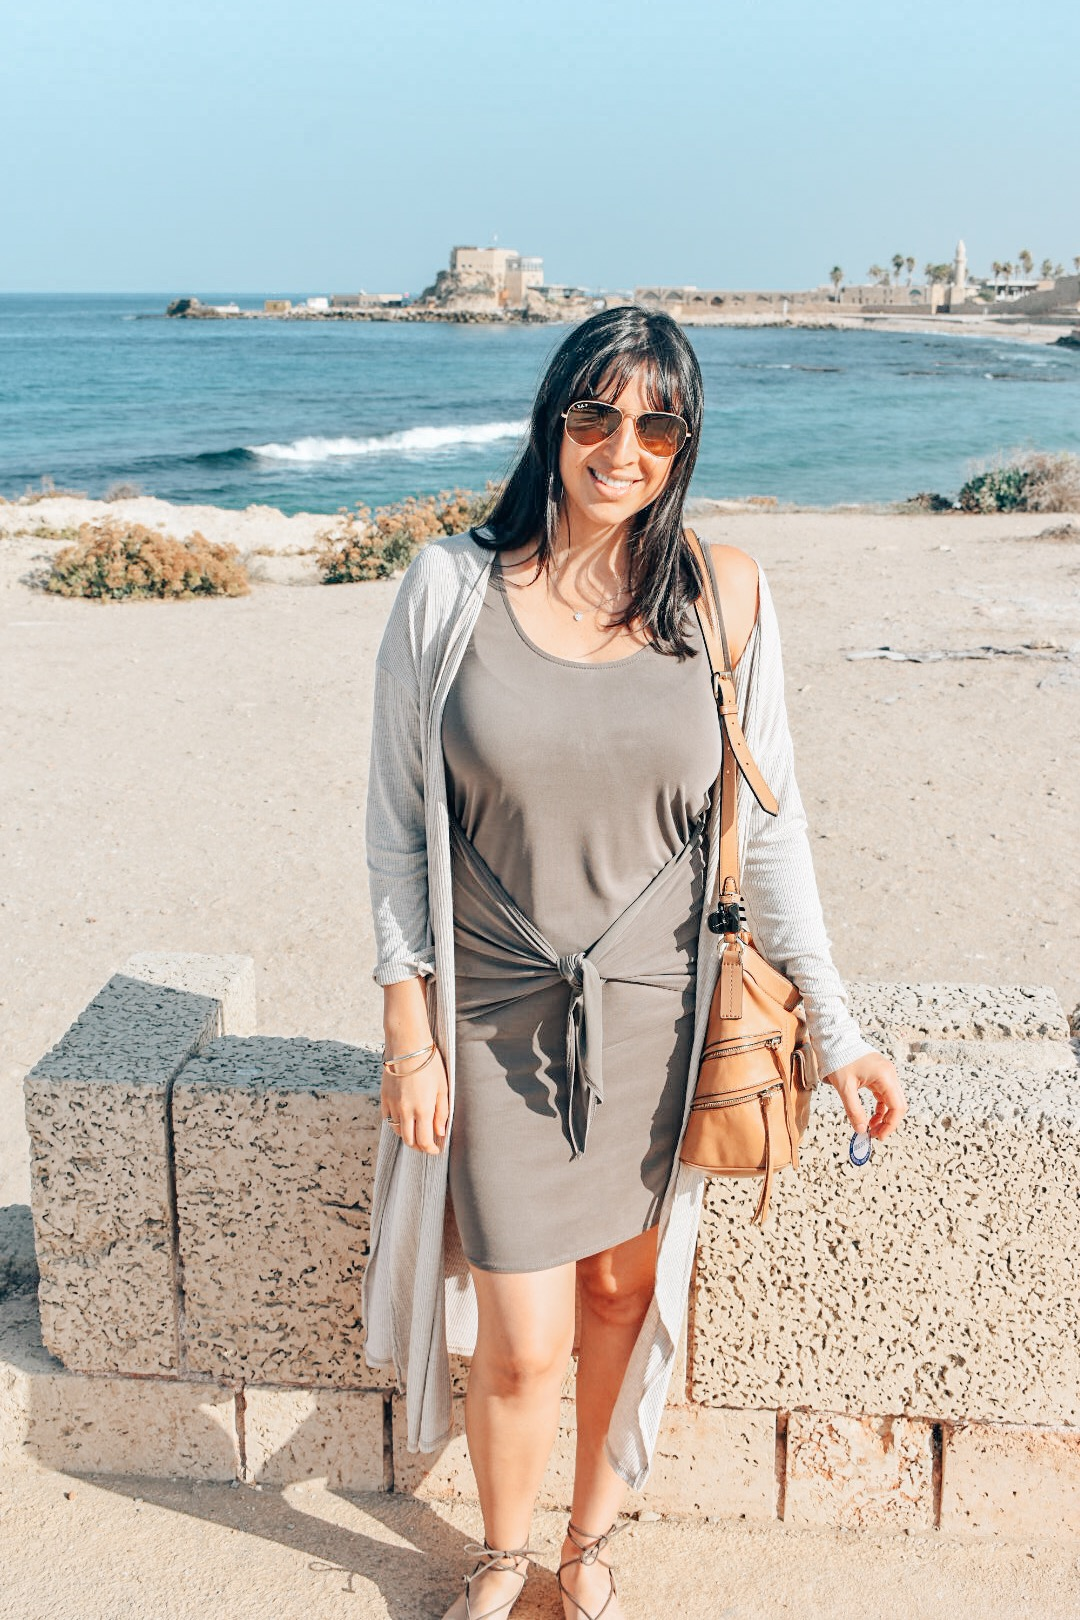 Would you believe I'm 4 months pregnant in this shot? Making the most of my time in Israel.